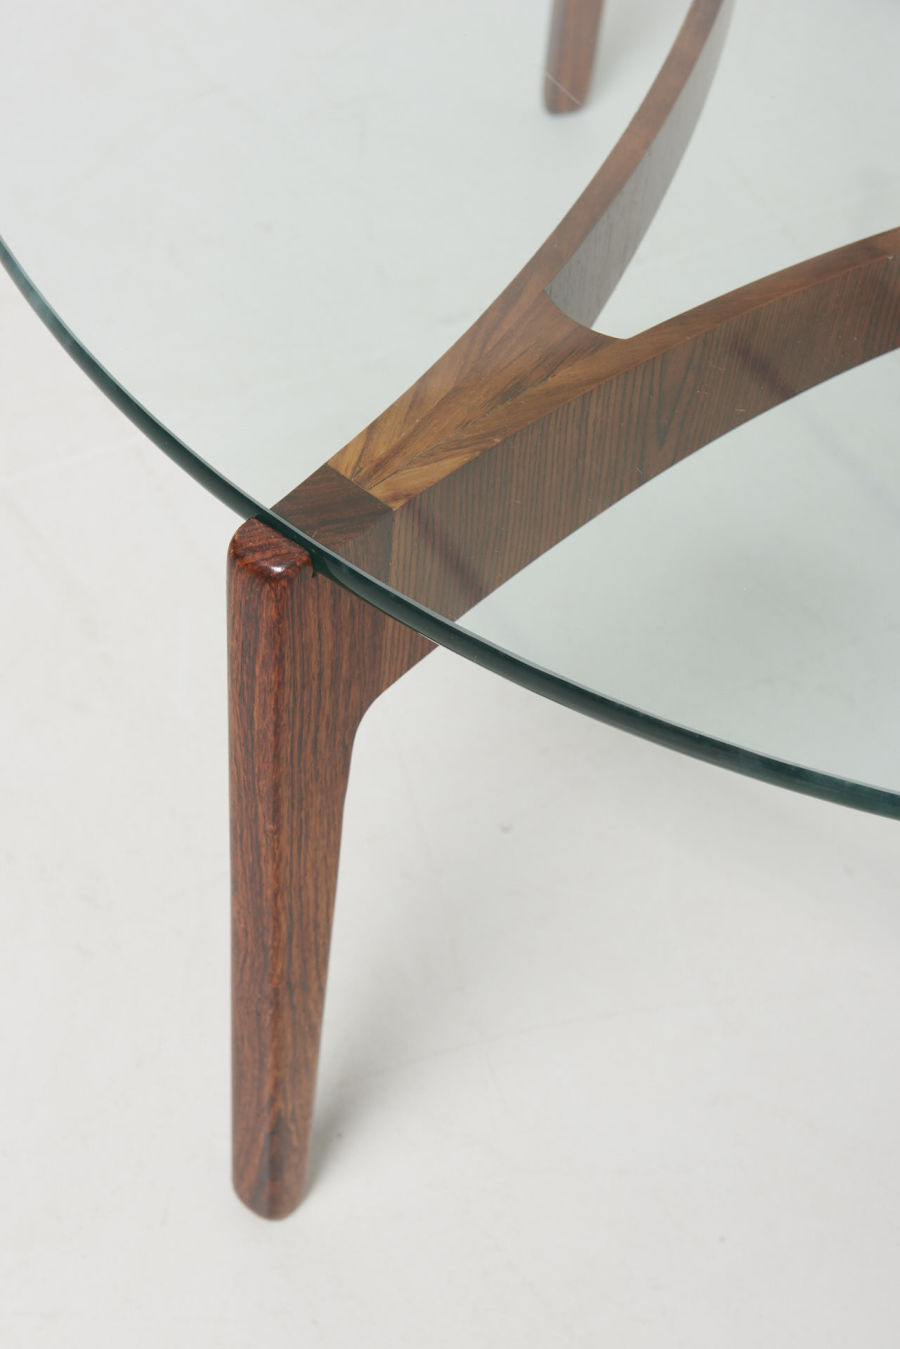 modestfurniture-vintage-2191-low-table-rosewood-sven-ellekaer-linneberg04